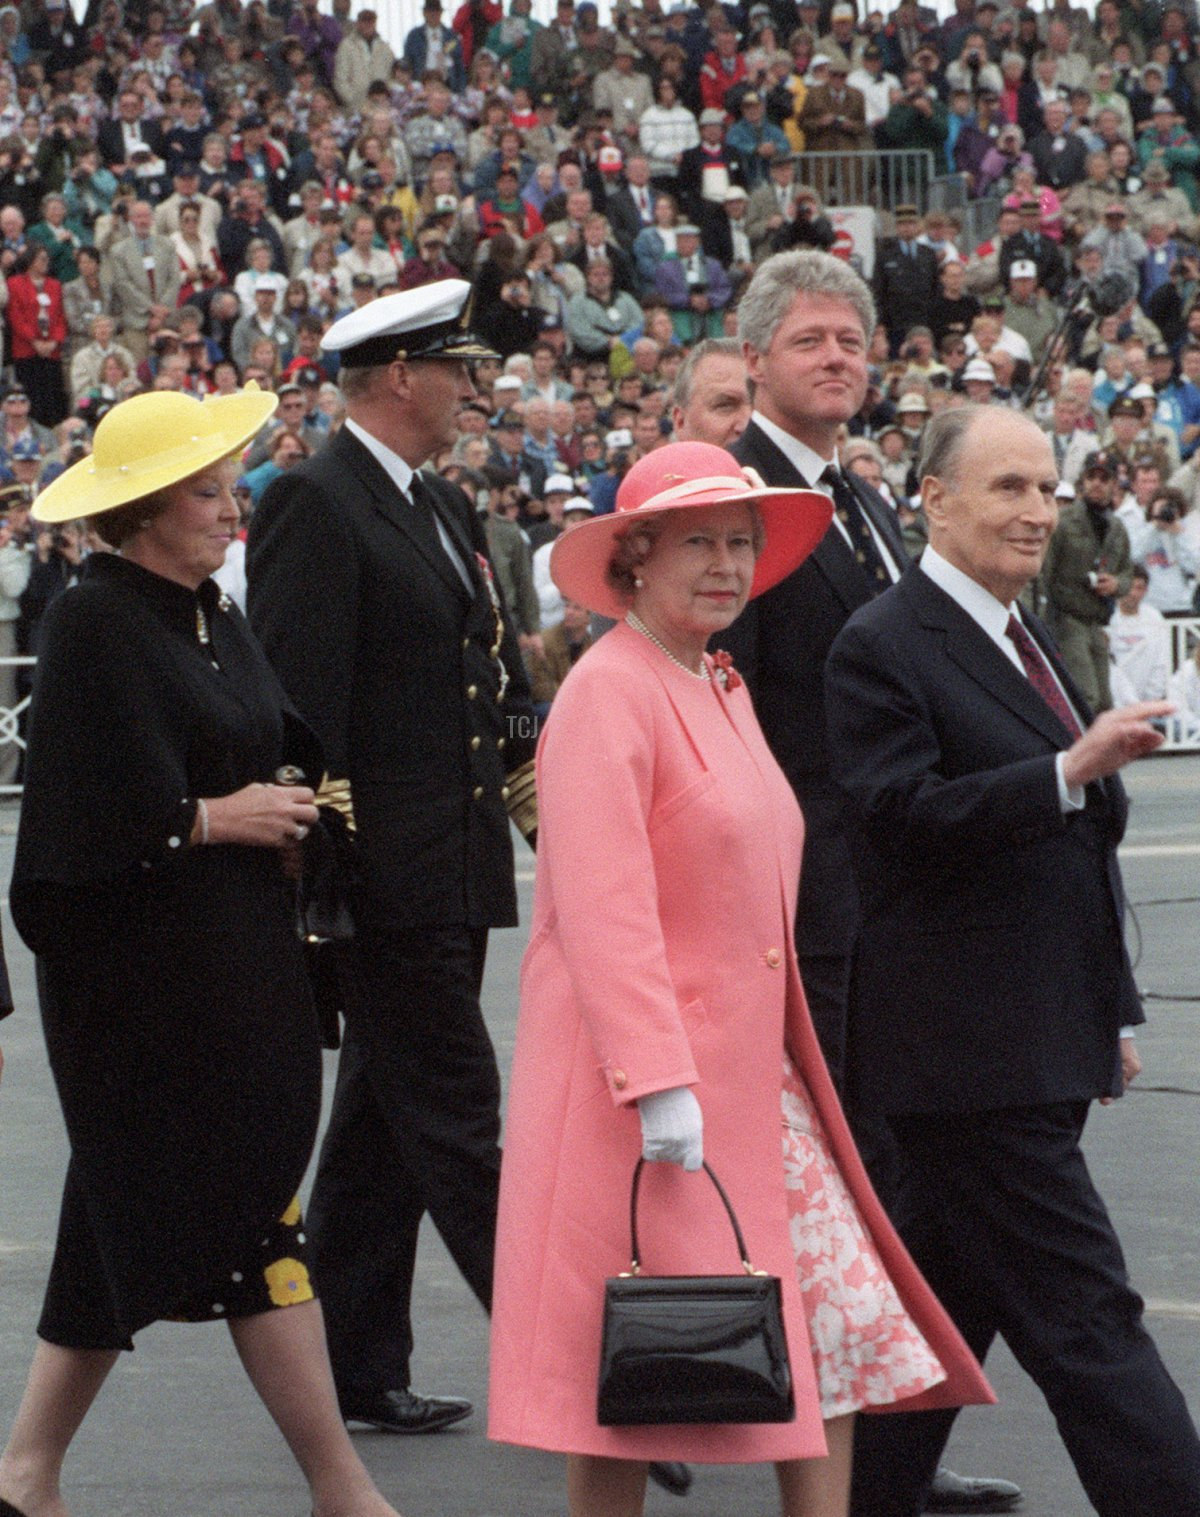 French President François Mitterrand (R) arrives for ceremonies during the commemoration of the 50th anniversary of D-Day 06 June 1994 at Omaha Beach. (From L-R) Czech President Vaclav Havel, Polish President Lech Walesa, non-unidentified, Dutch Queen Beatrix, Norwegian King Harald, Britain's Queen Elizabeth and US President Bill Clinton